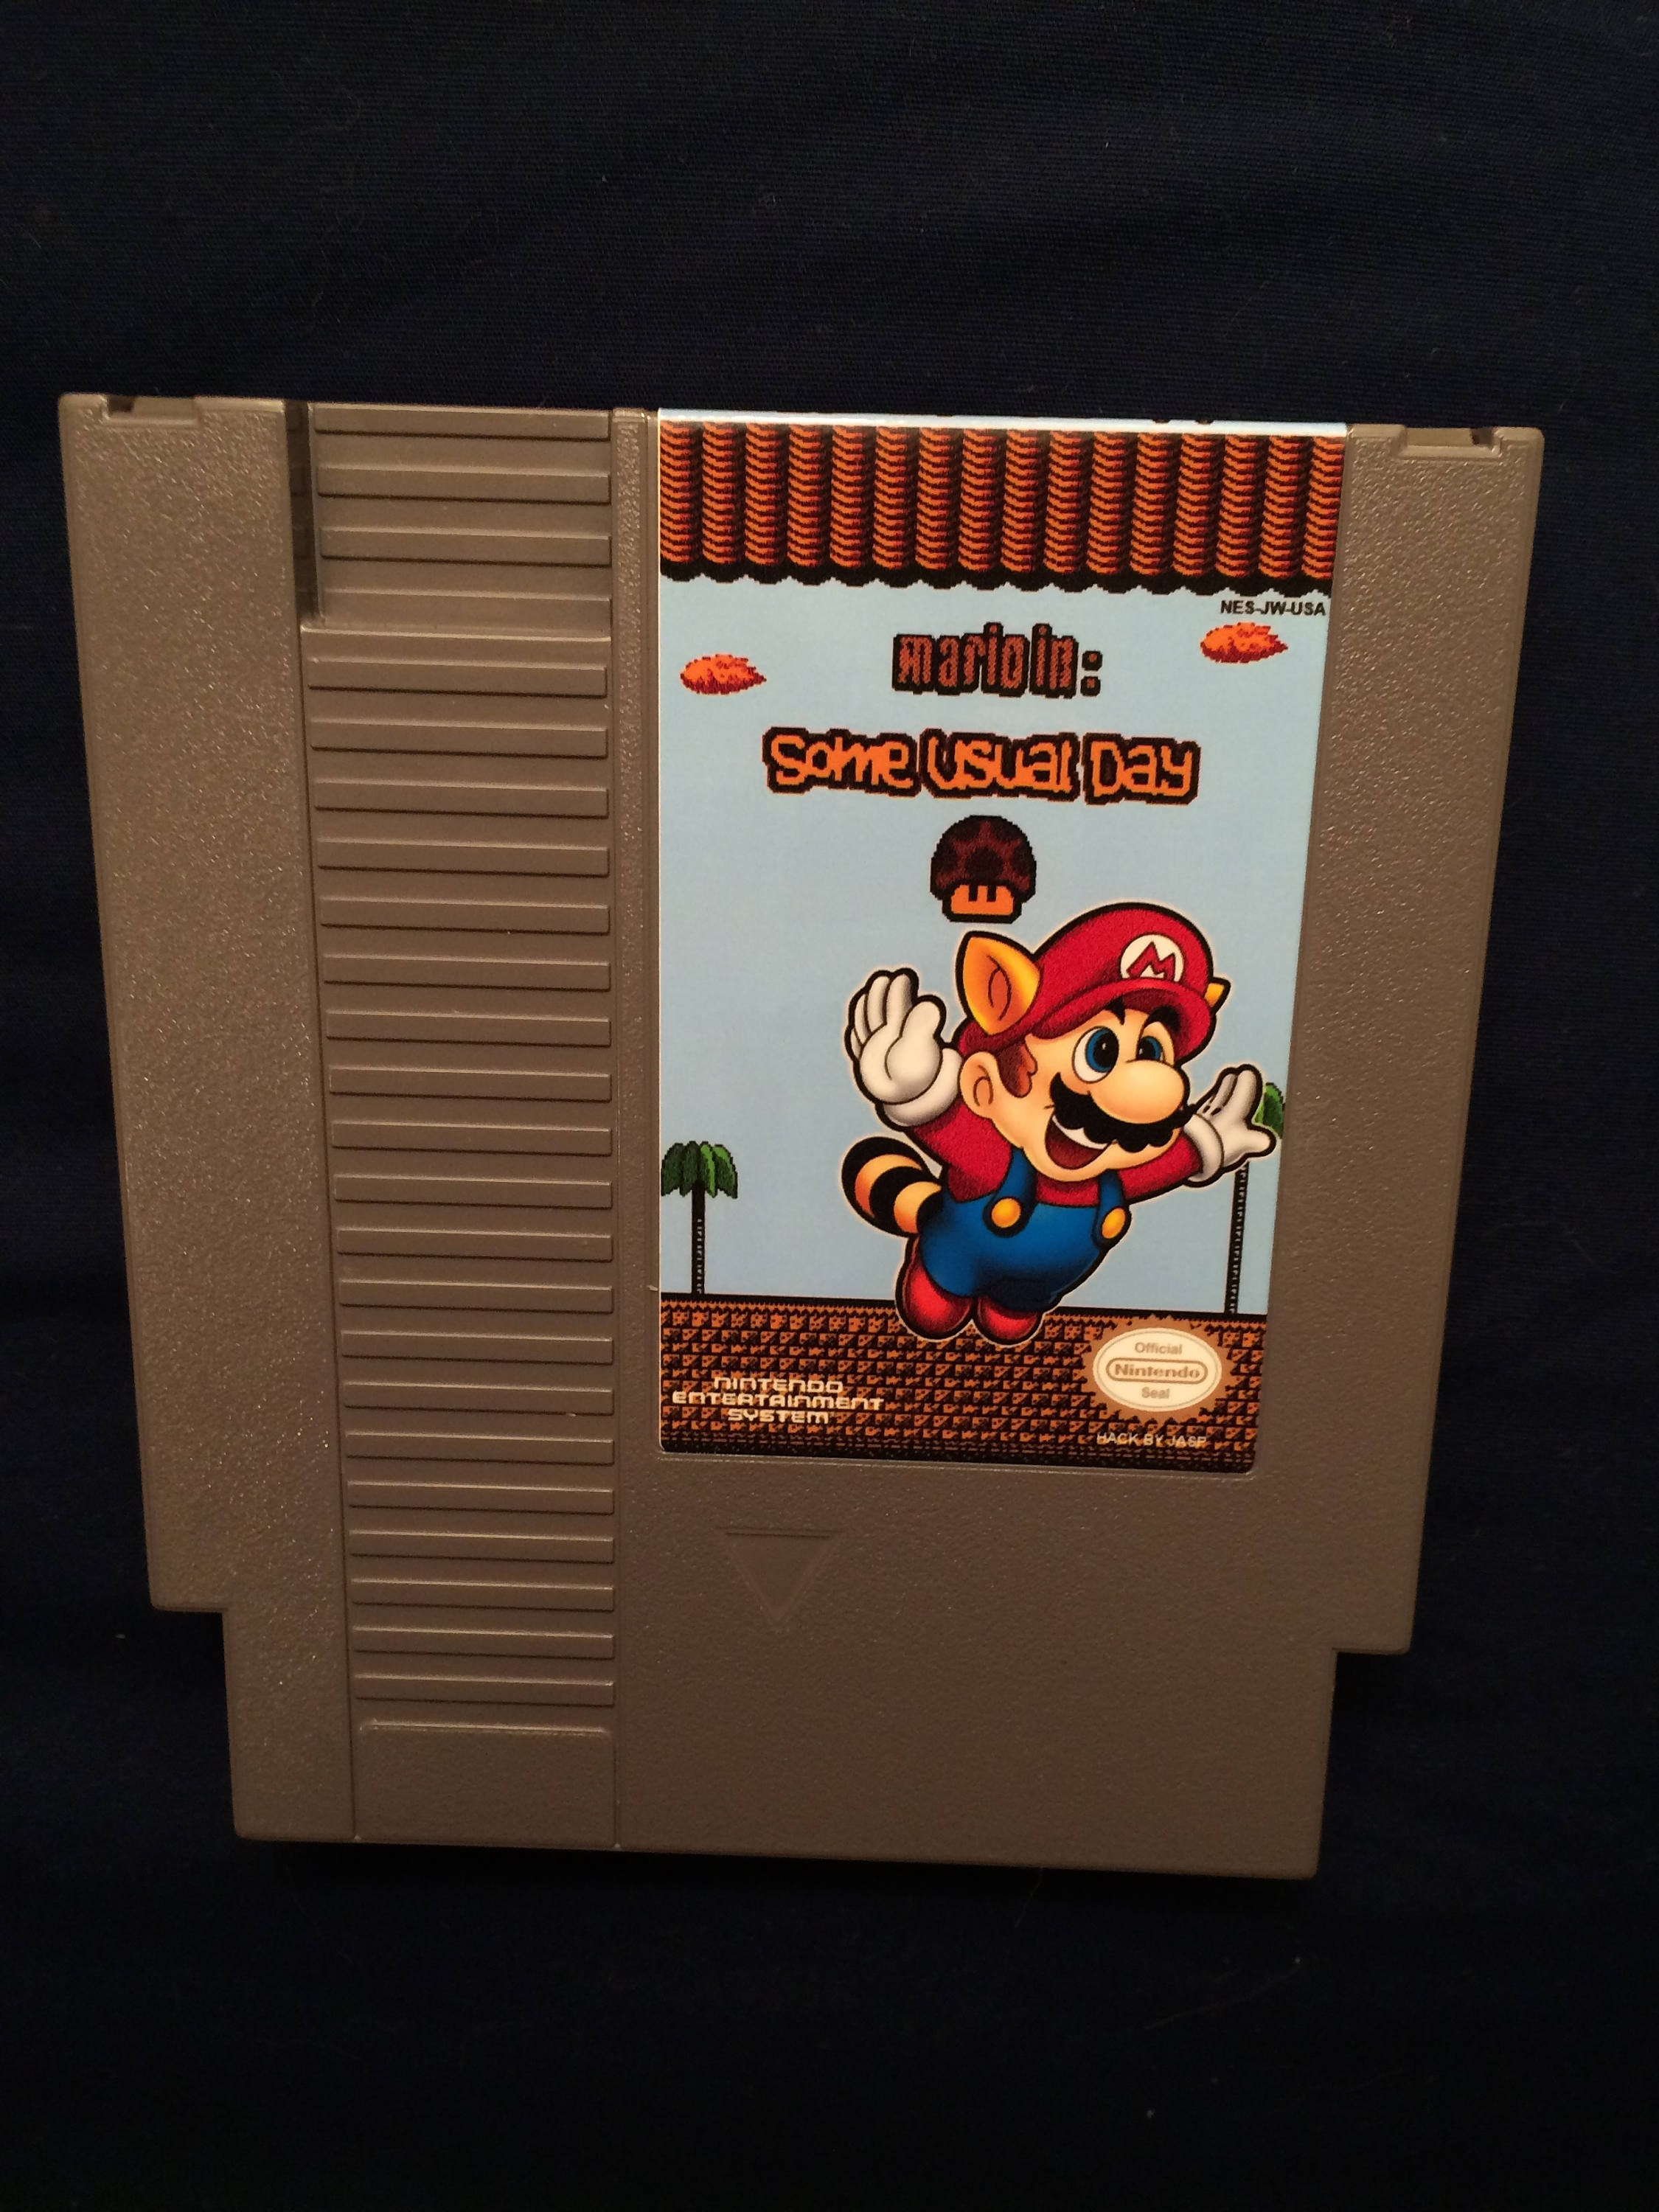 Mario In Some Usual Day Rom Hack Of Super Mario Bros 3 Nes Etsy